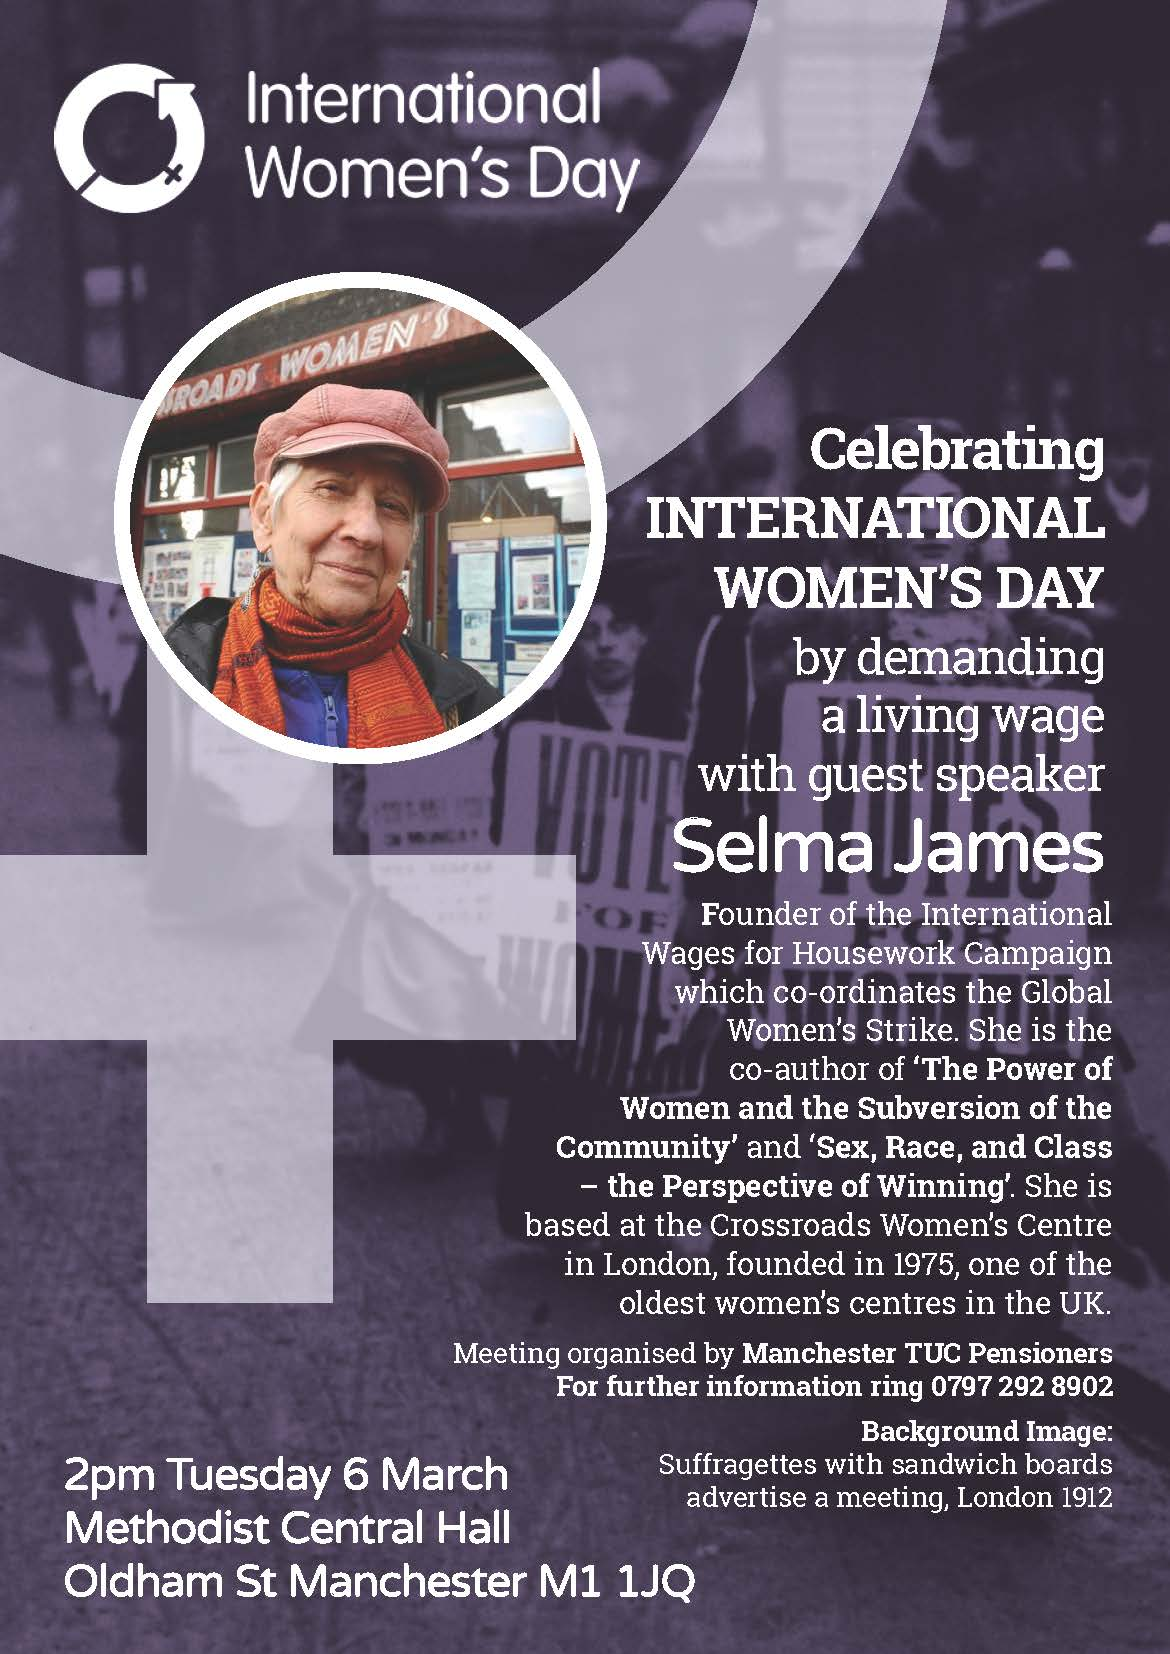 Celebrating International Womens Day meeting Manchester TUC Pensioners Tuesday 6 March 2018 Methodist Central Hall